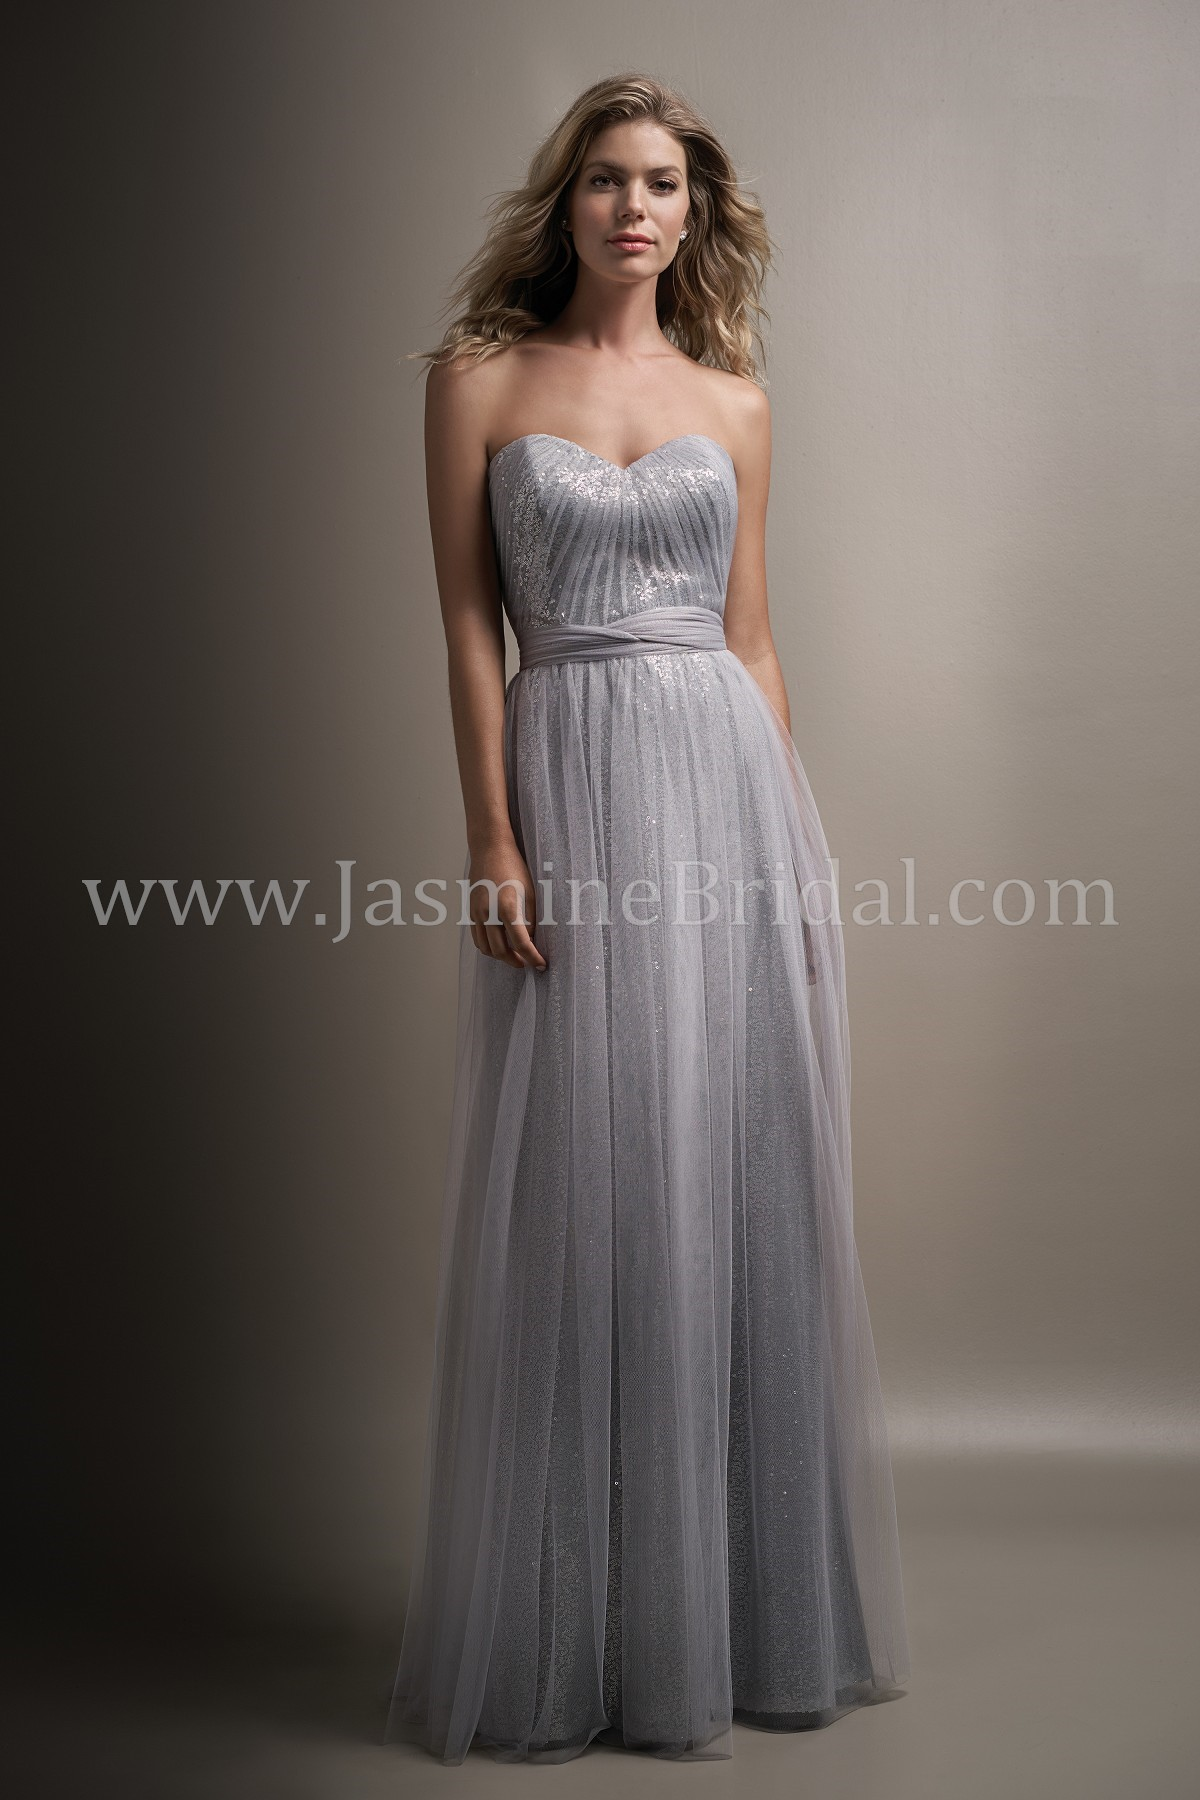 cf684034f75 L194007 Long Sweetheart Strapless Soft Tulle   Sequin Bridesmaid Dress